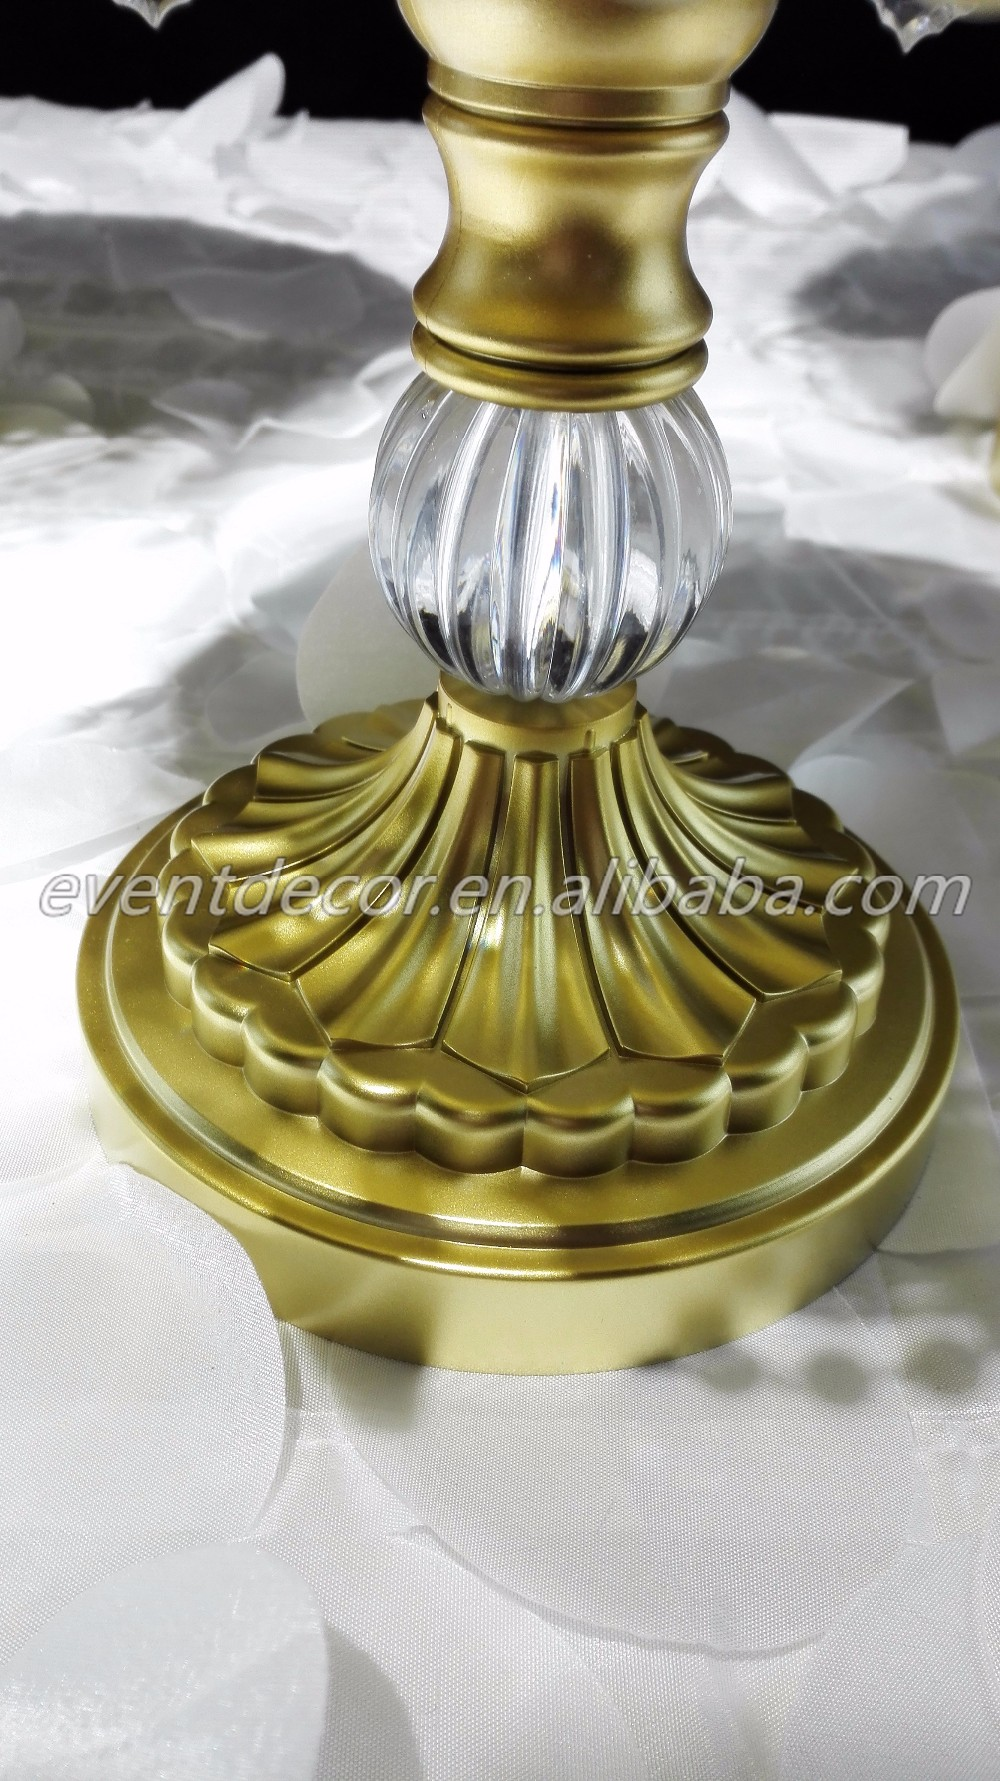 wedding cake stands to buy metal golden dessert cupcake display 3 size wedding 8767